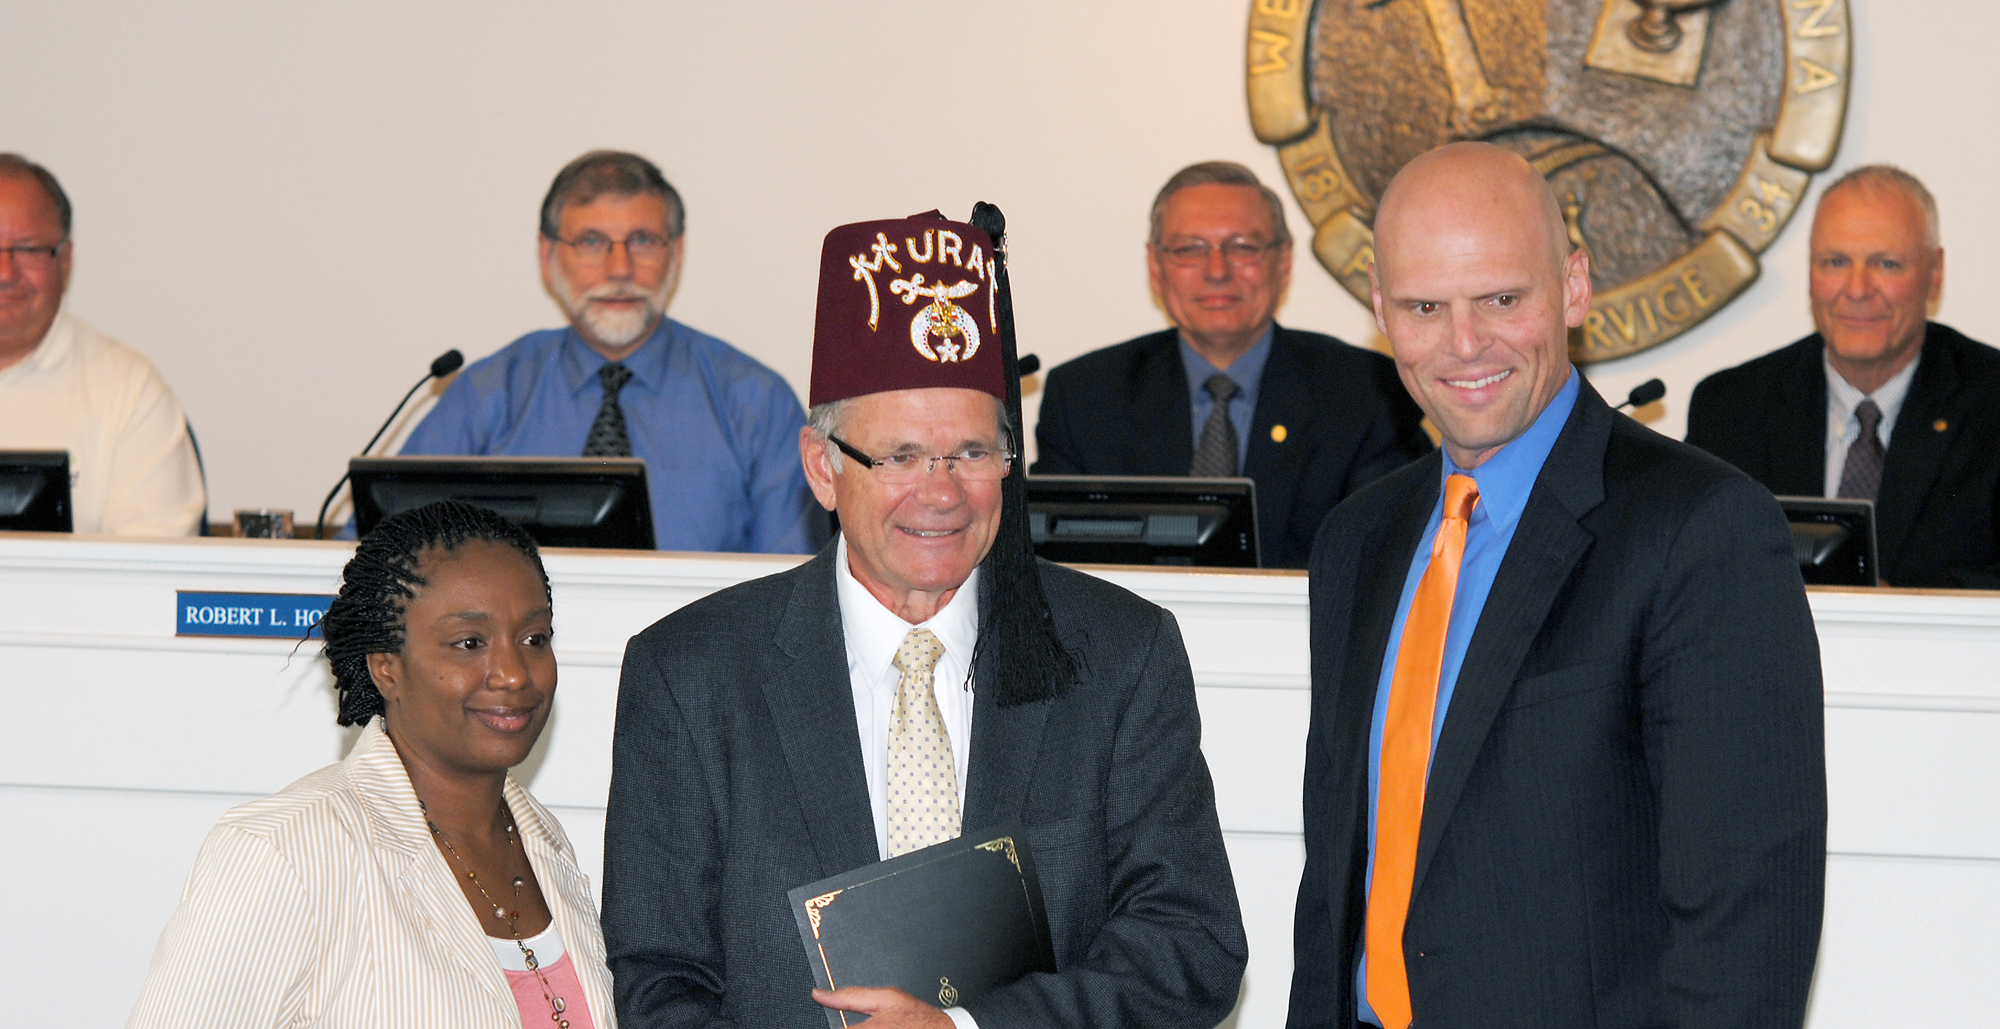 From left: Westfield White Castle General Manager Danielle Proctor, Shriner David Dore and Deputy Mayor Todd Burtron. Aug. 20 was declared Shriners Hospitals for Children Day and the Westfield fast-food location will be accepting donations to support sick children. (Photo by Robert Herrington)